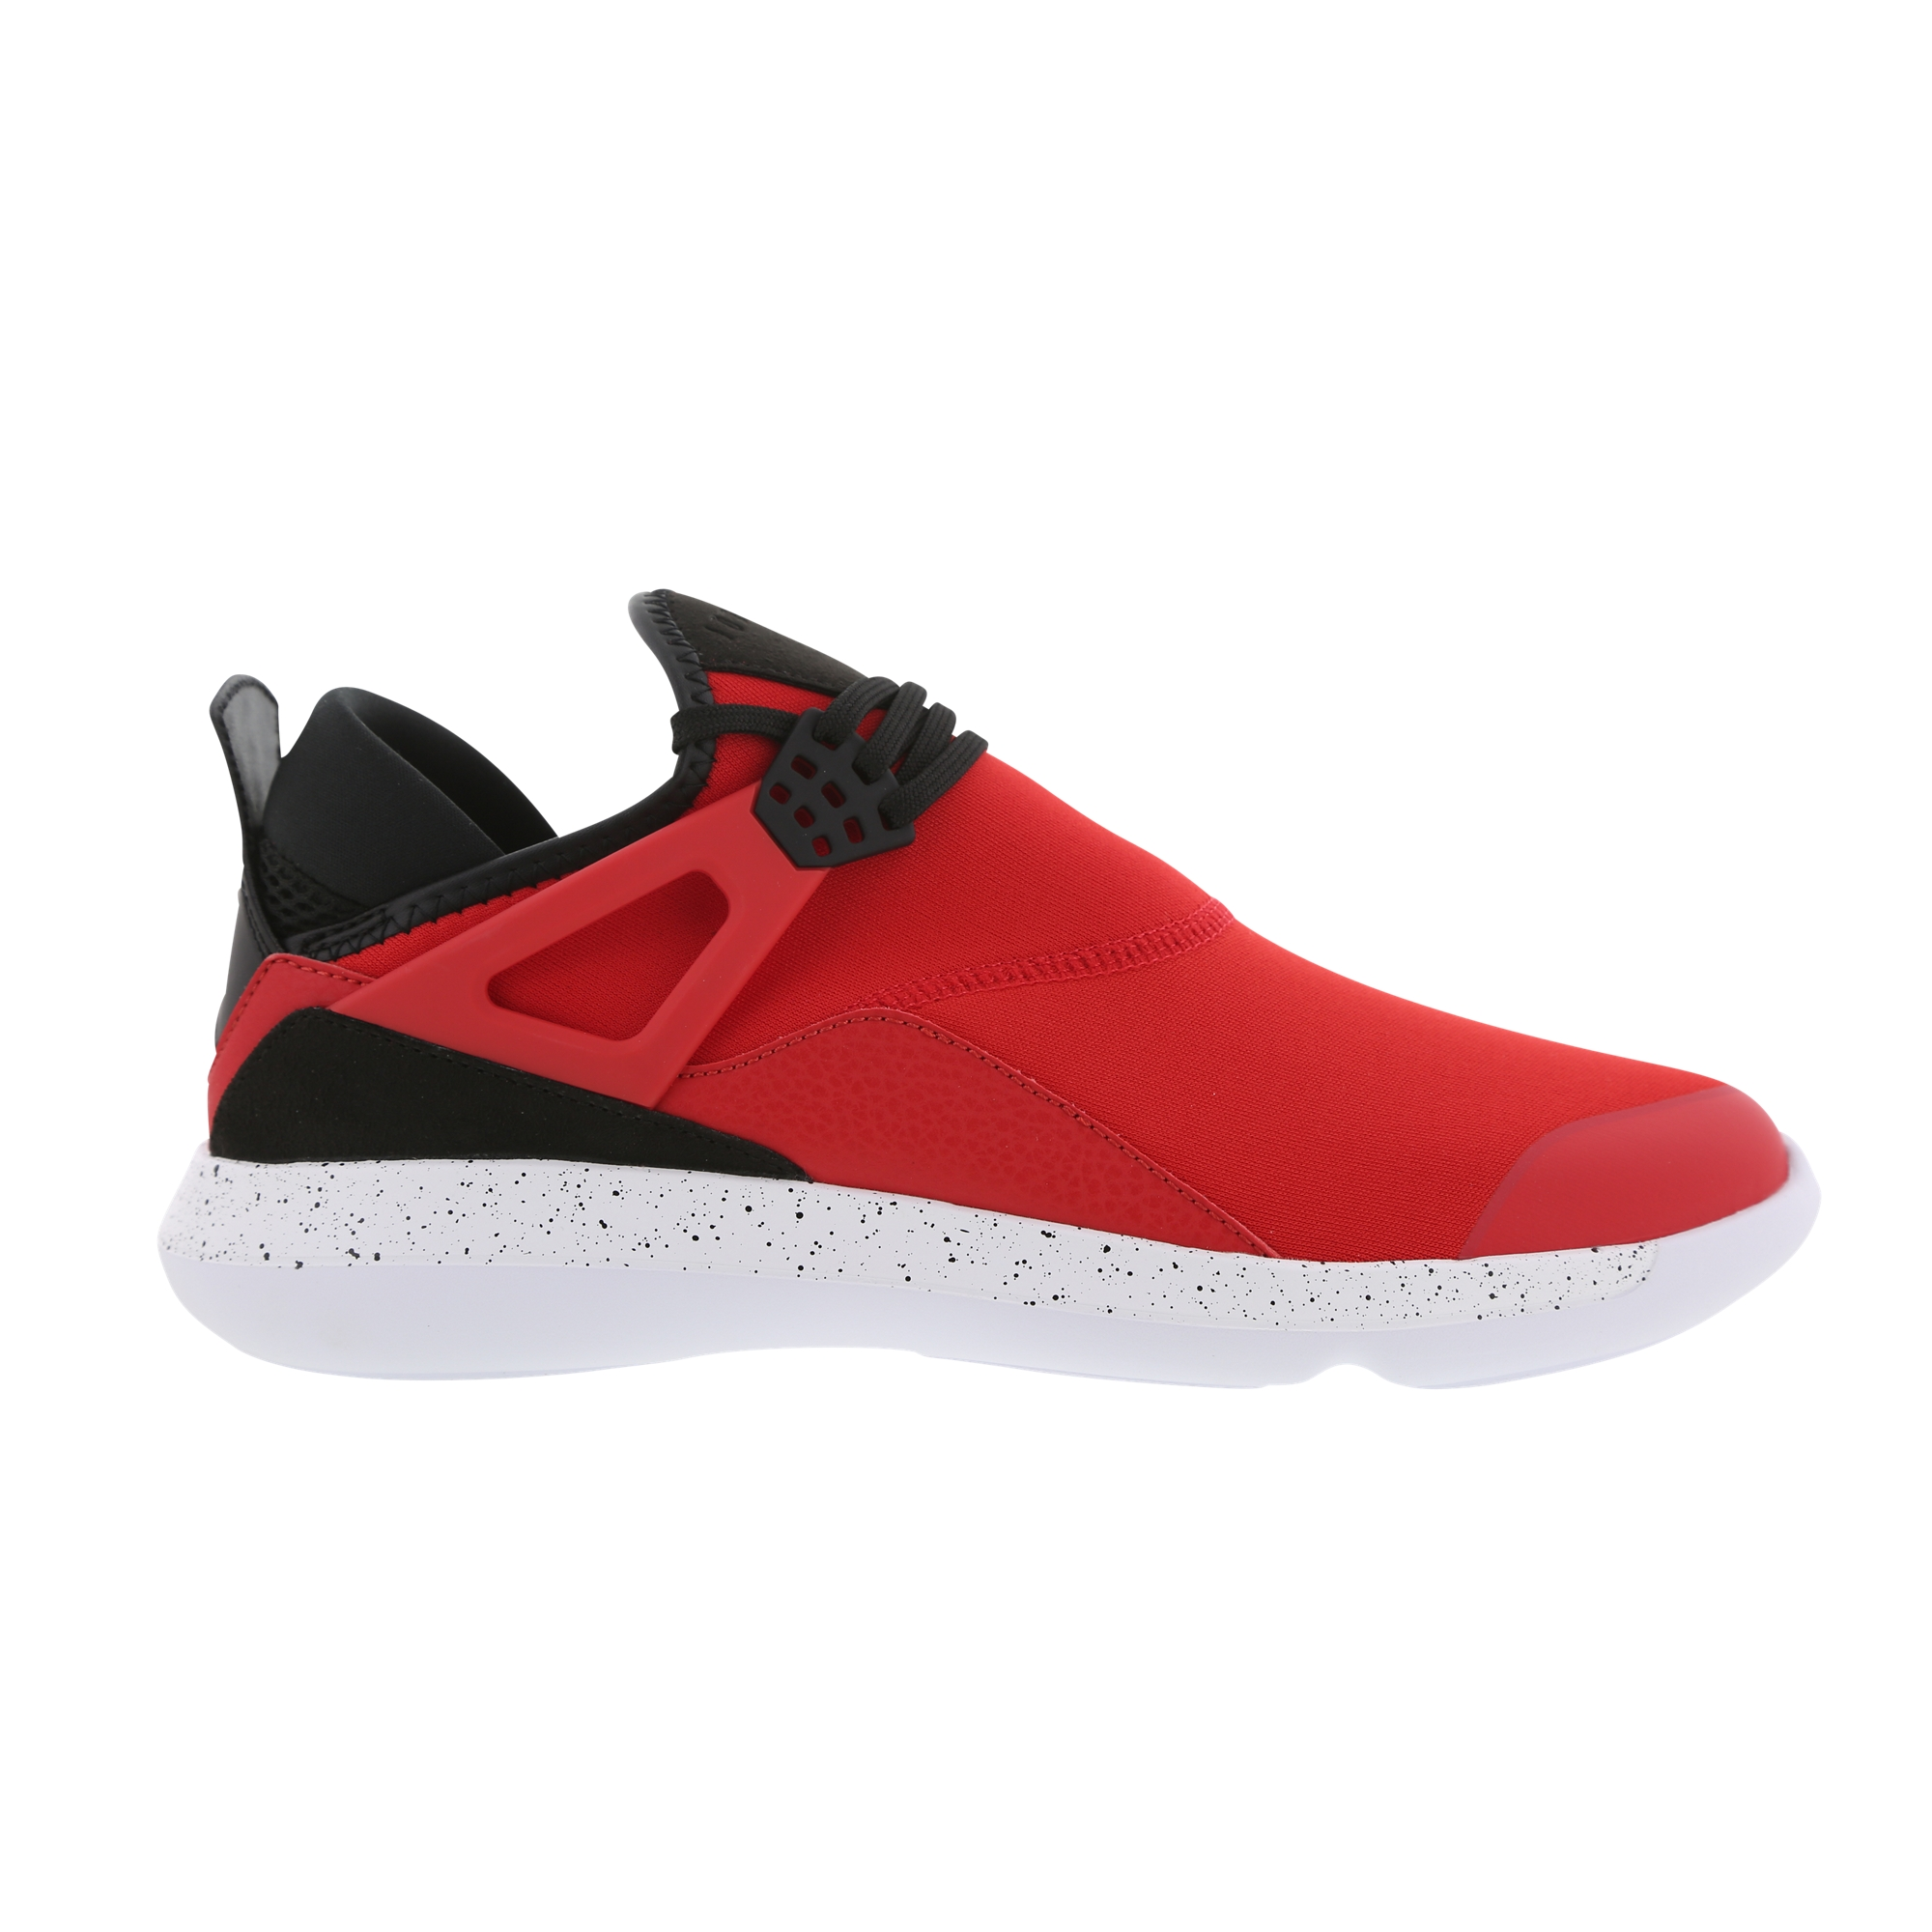 3f68b80ae16 The Jordan Fly  89 Will Come in Red - WearTesters